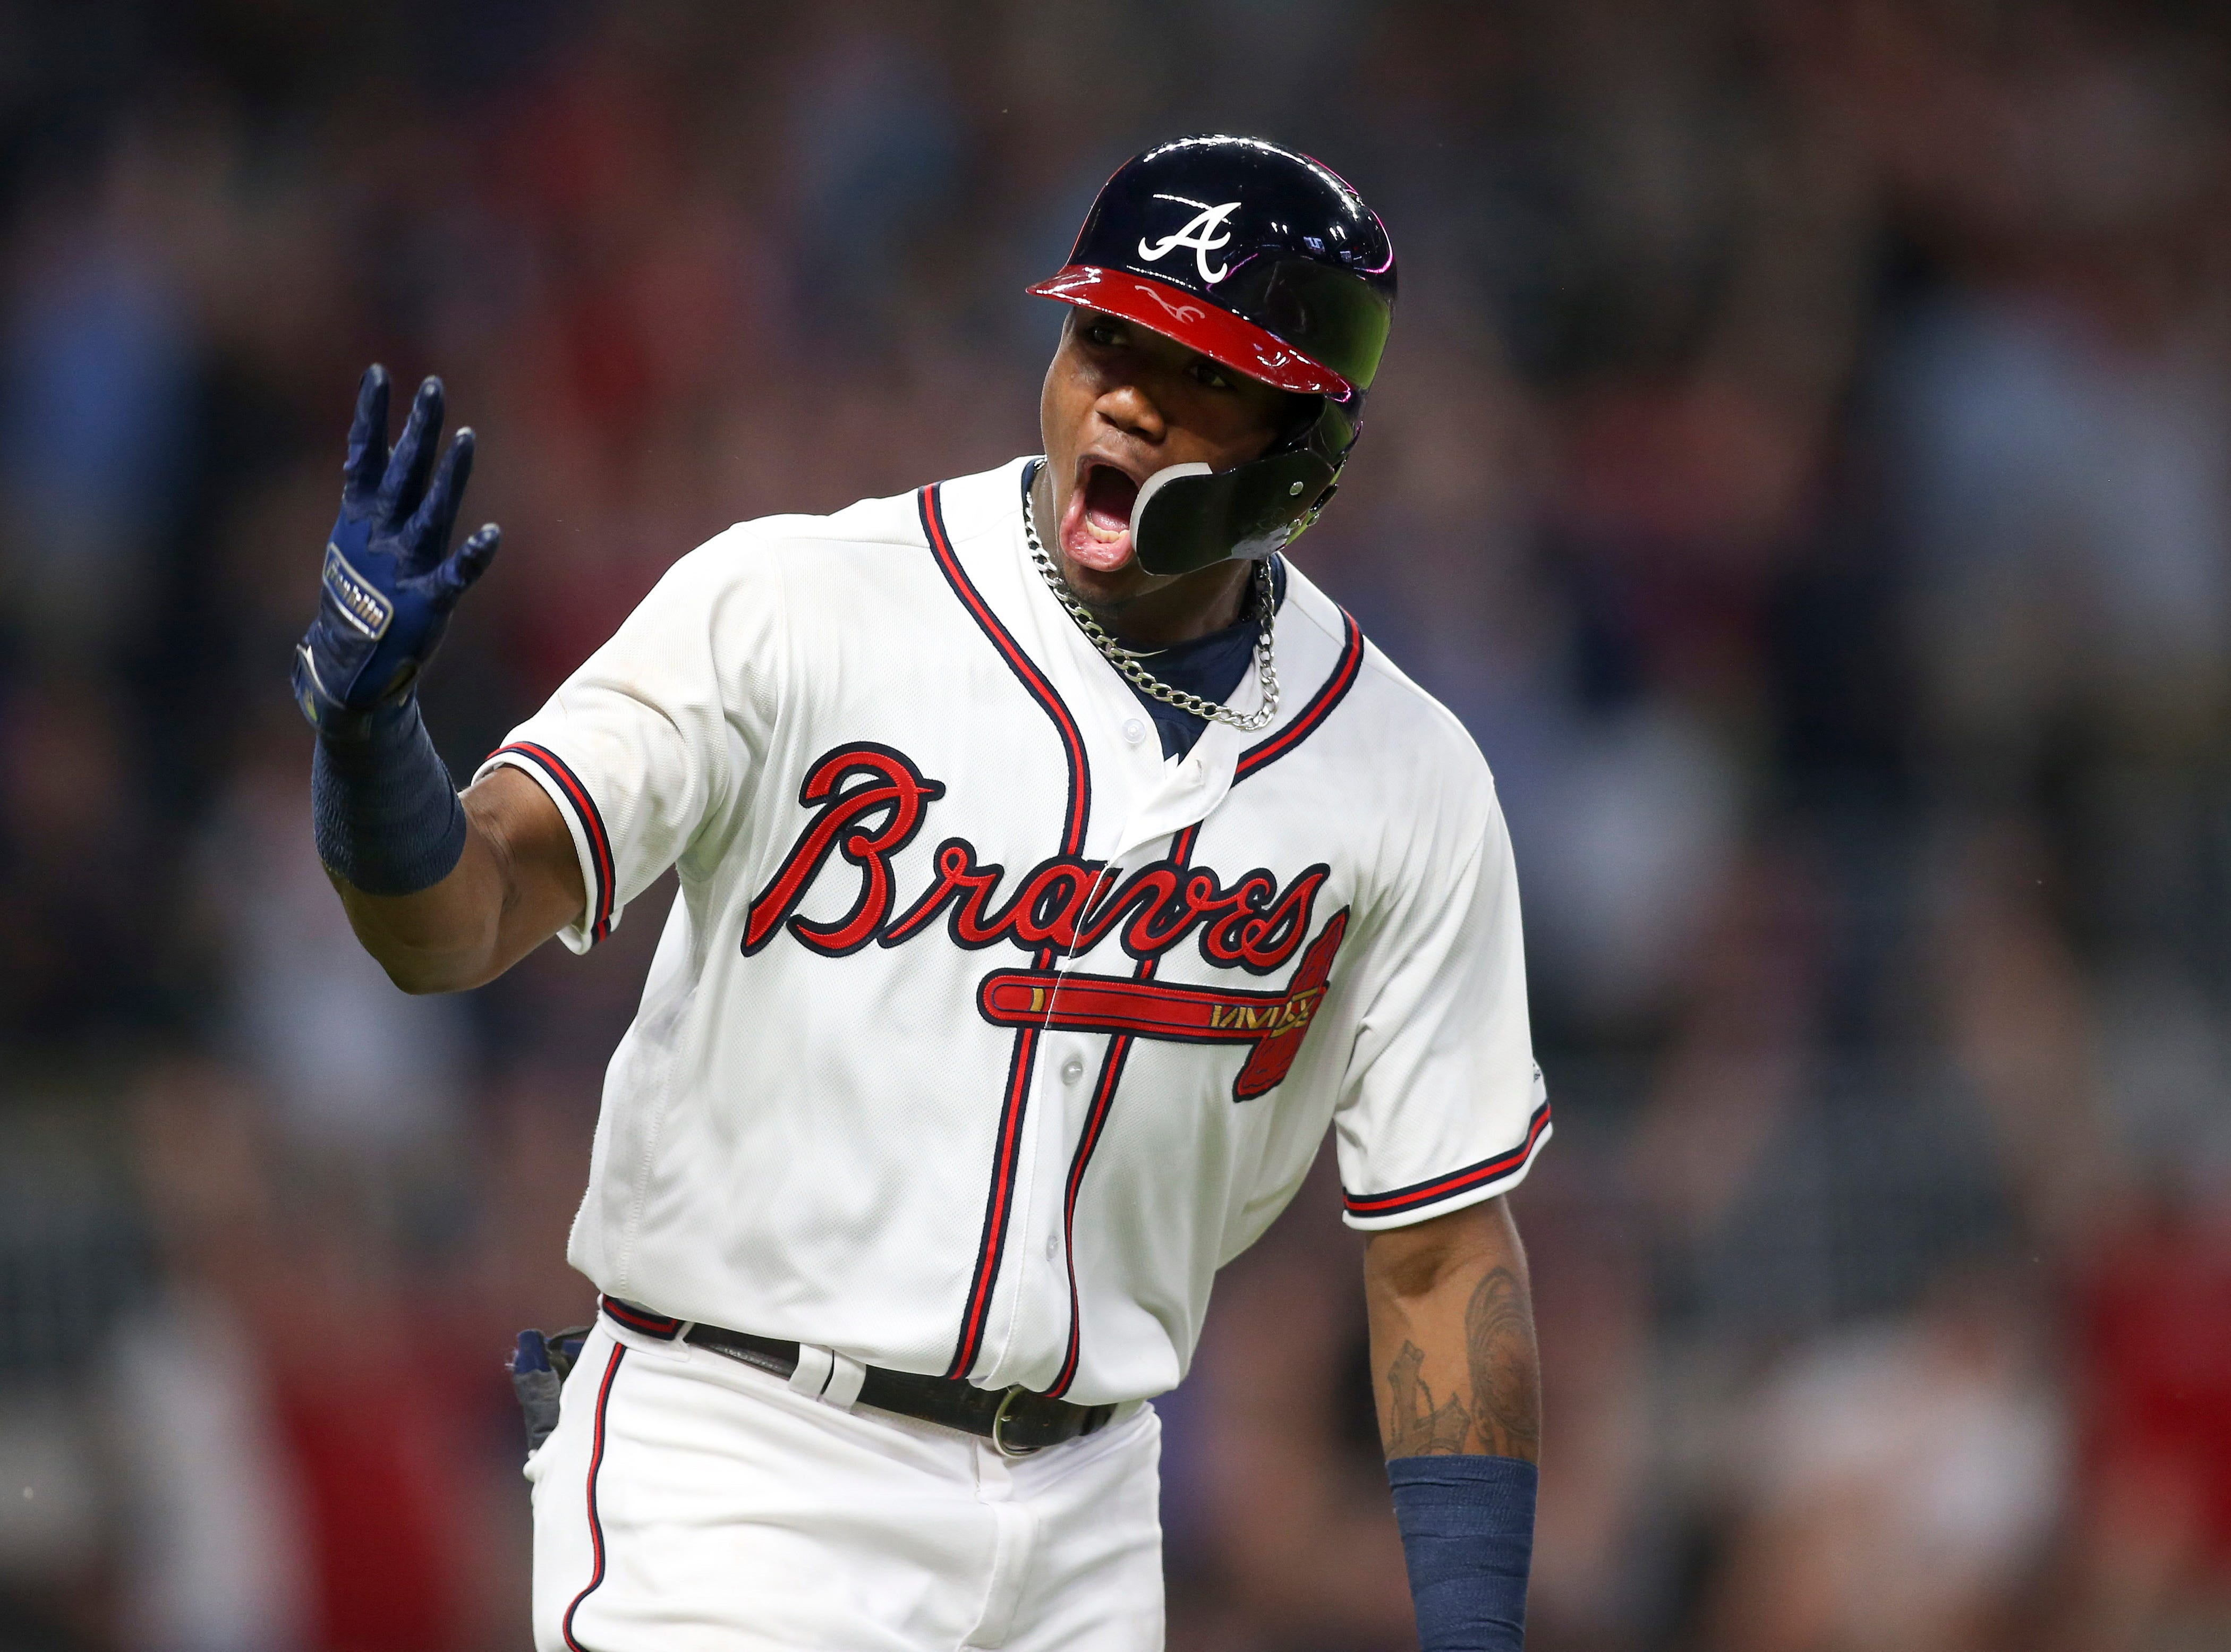 Aug. 14: Atlanta Braves left fielder Ronald Acuna Jr. celebrates after hitting a three-run home run against the Miami Marlins in the seventh inning at SunTrust Park.